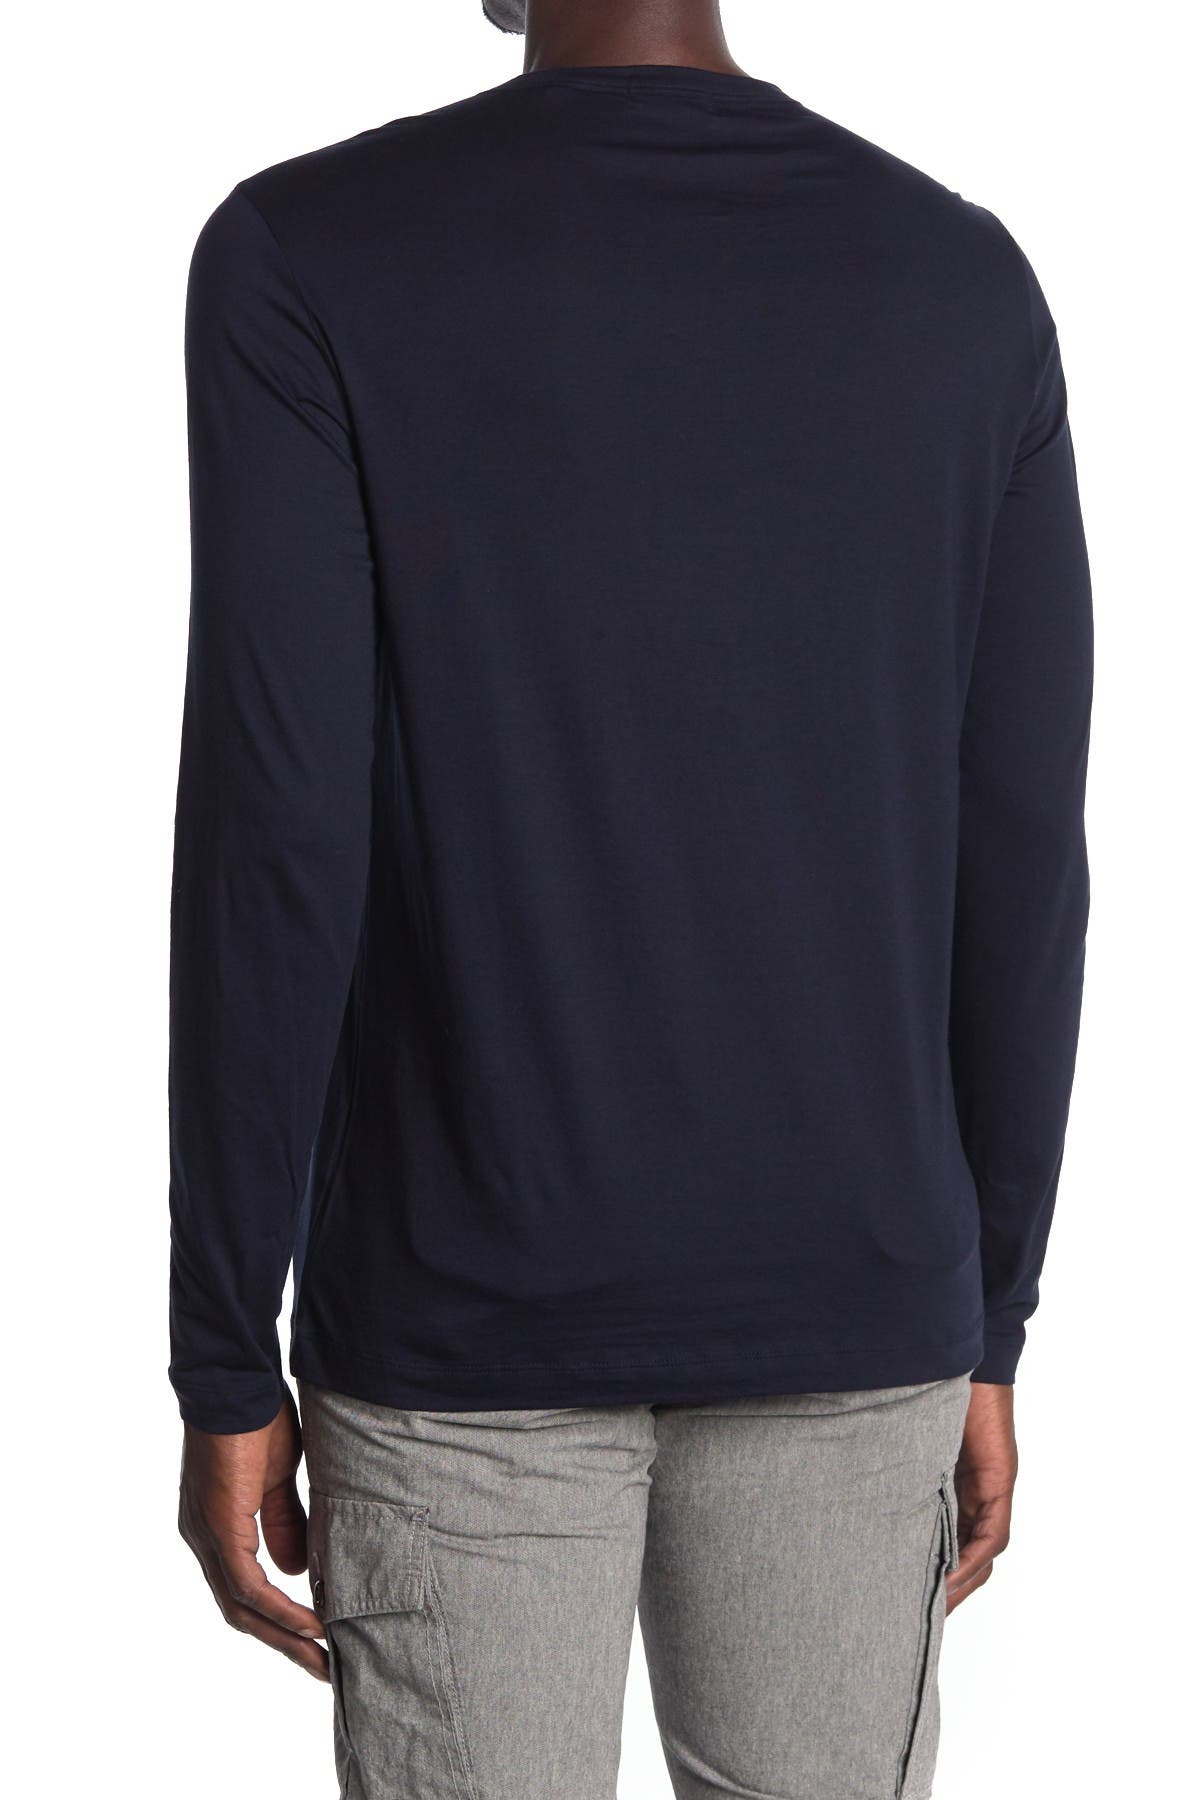 Theory Gaskell Henley Long Sleeve Shirt